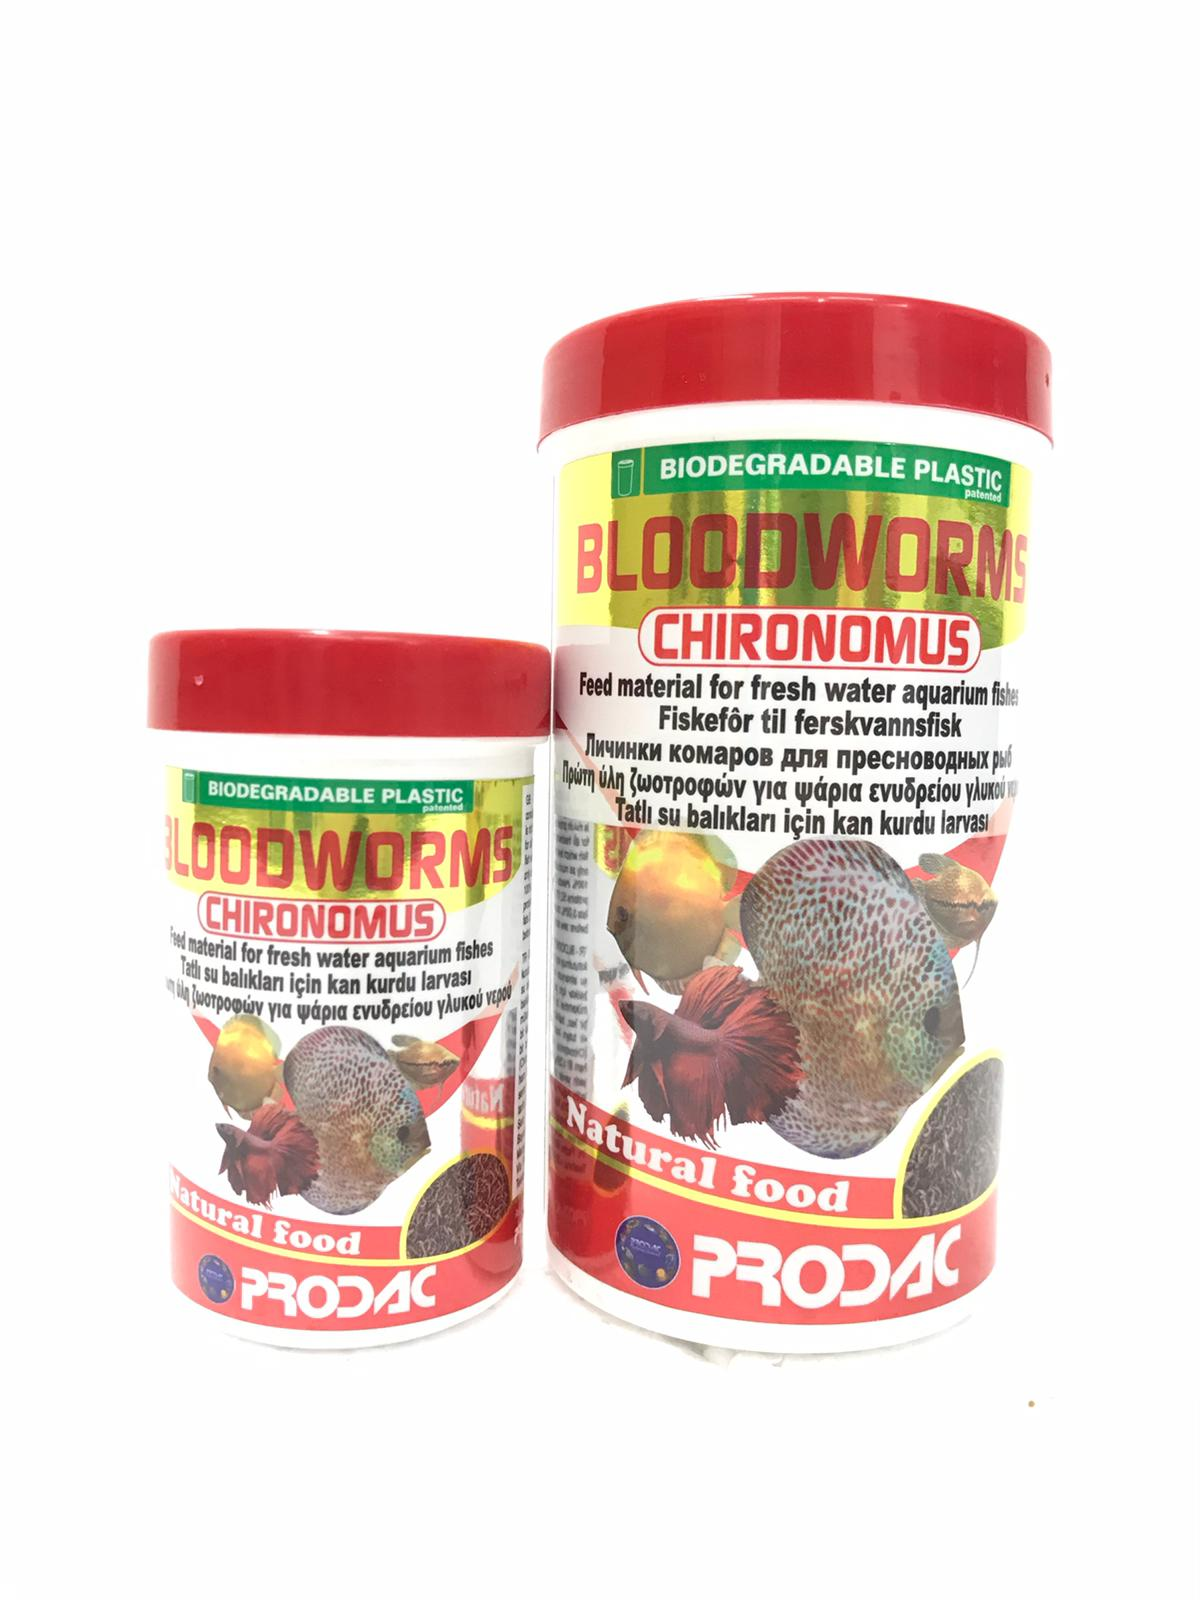 Prodac Bloodworms Chironomus